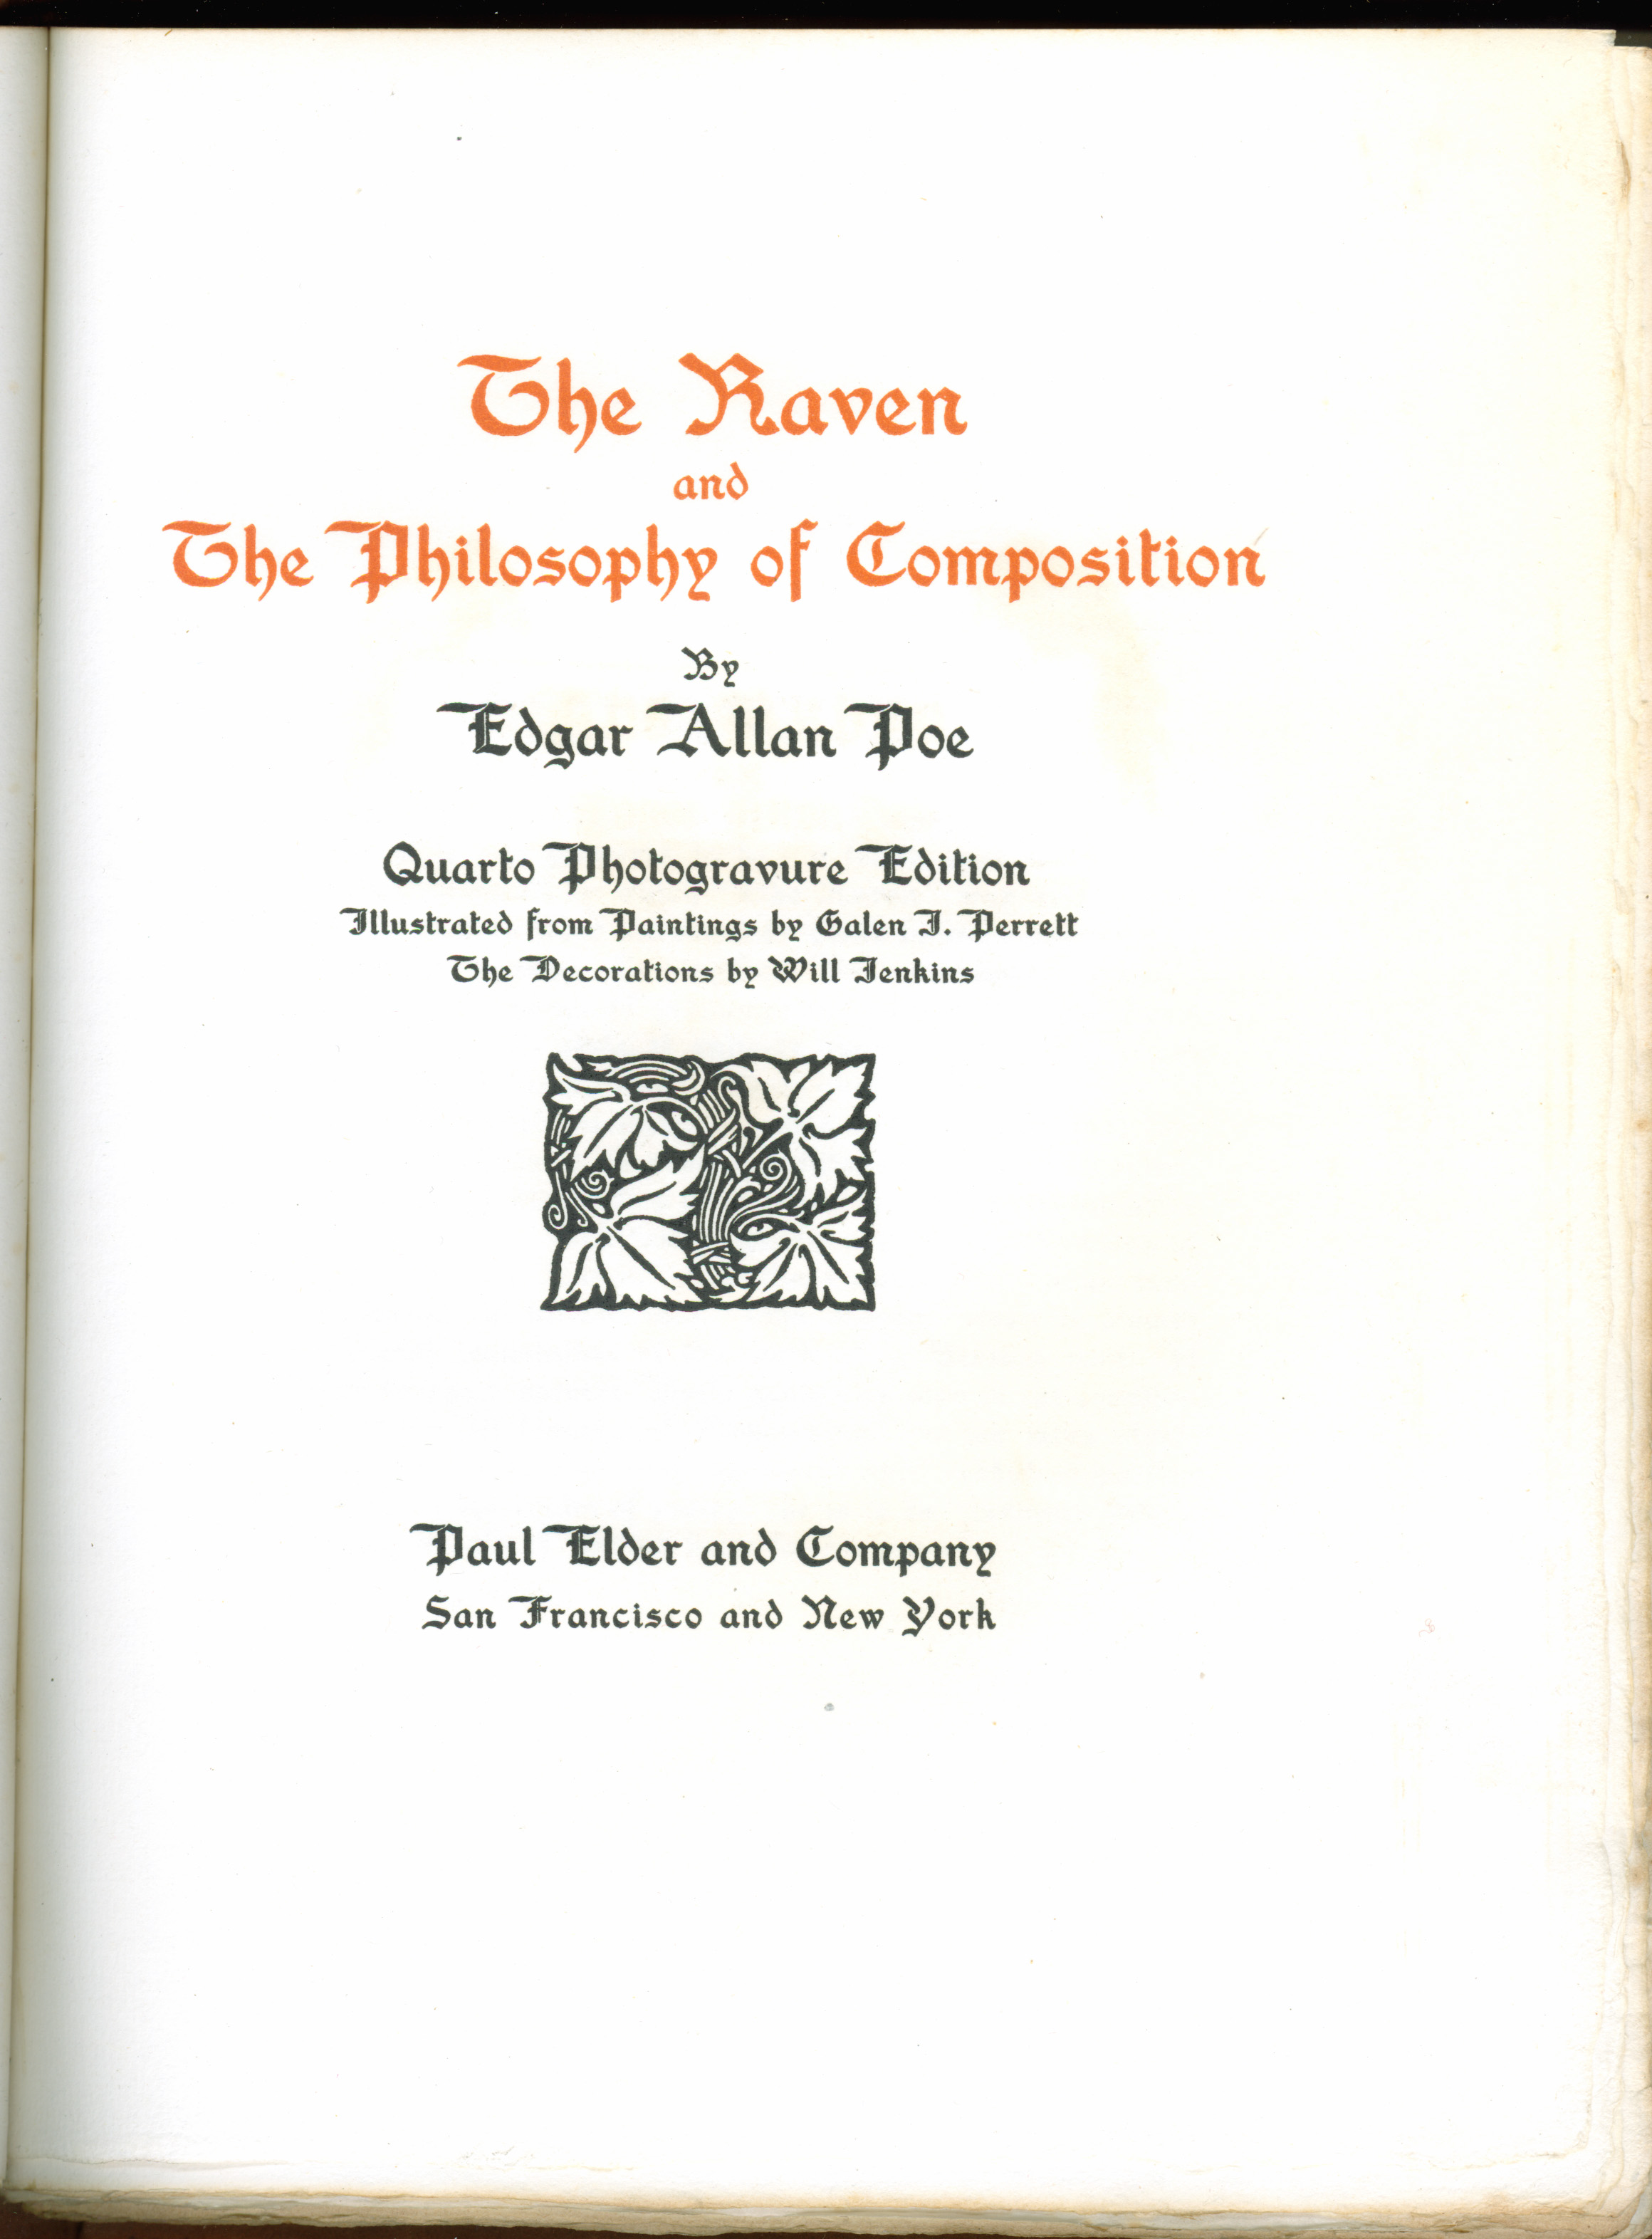 paul elder co the raven 1907 title page of the raven